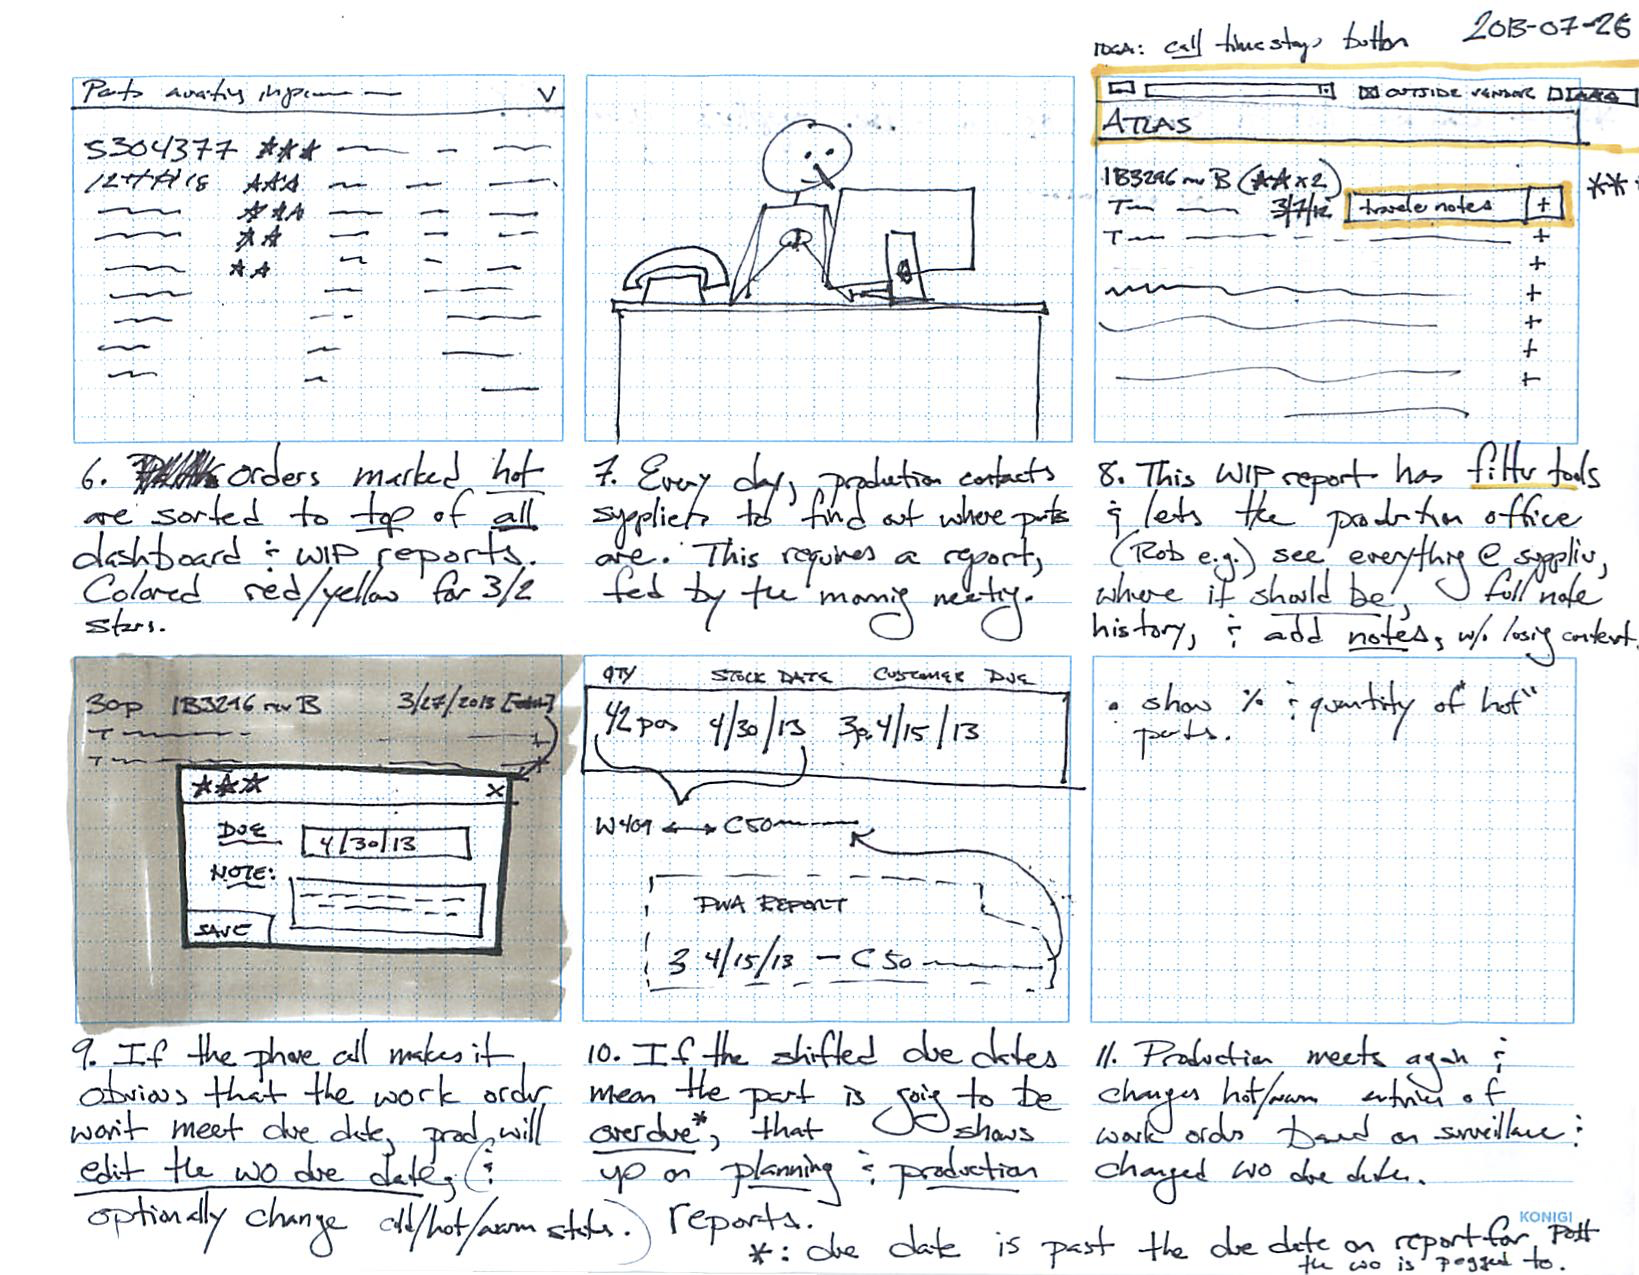 Sketching storyboards with first pass ideas at the functional elements